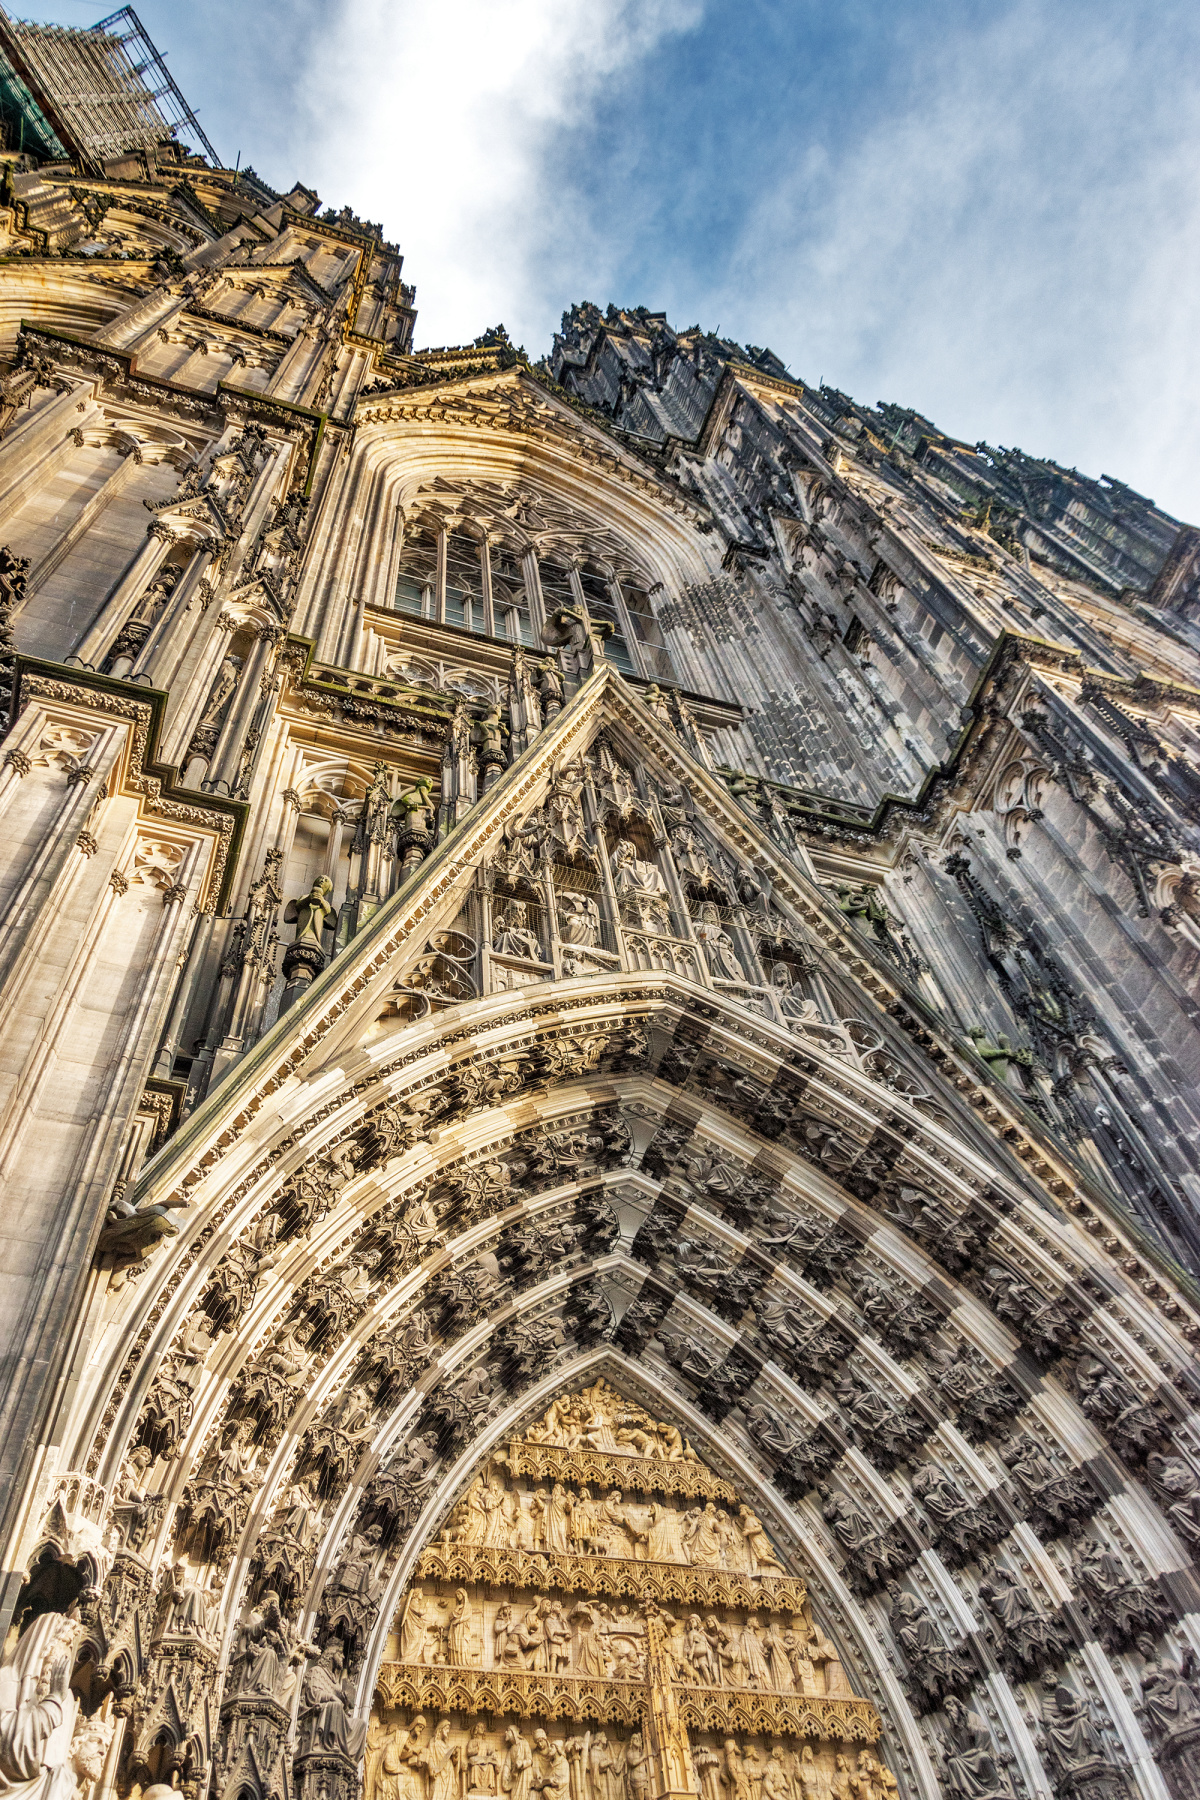 The Gold of the Kölner Dom